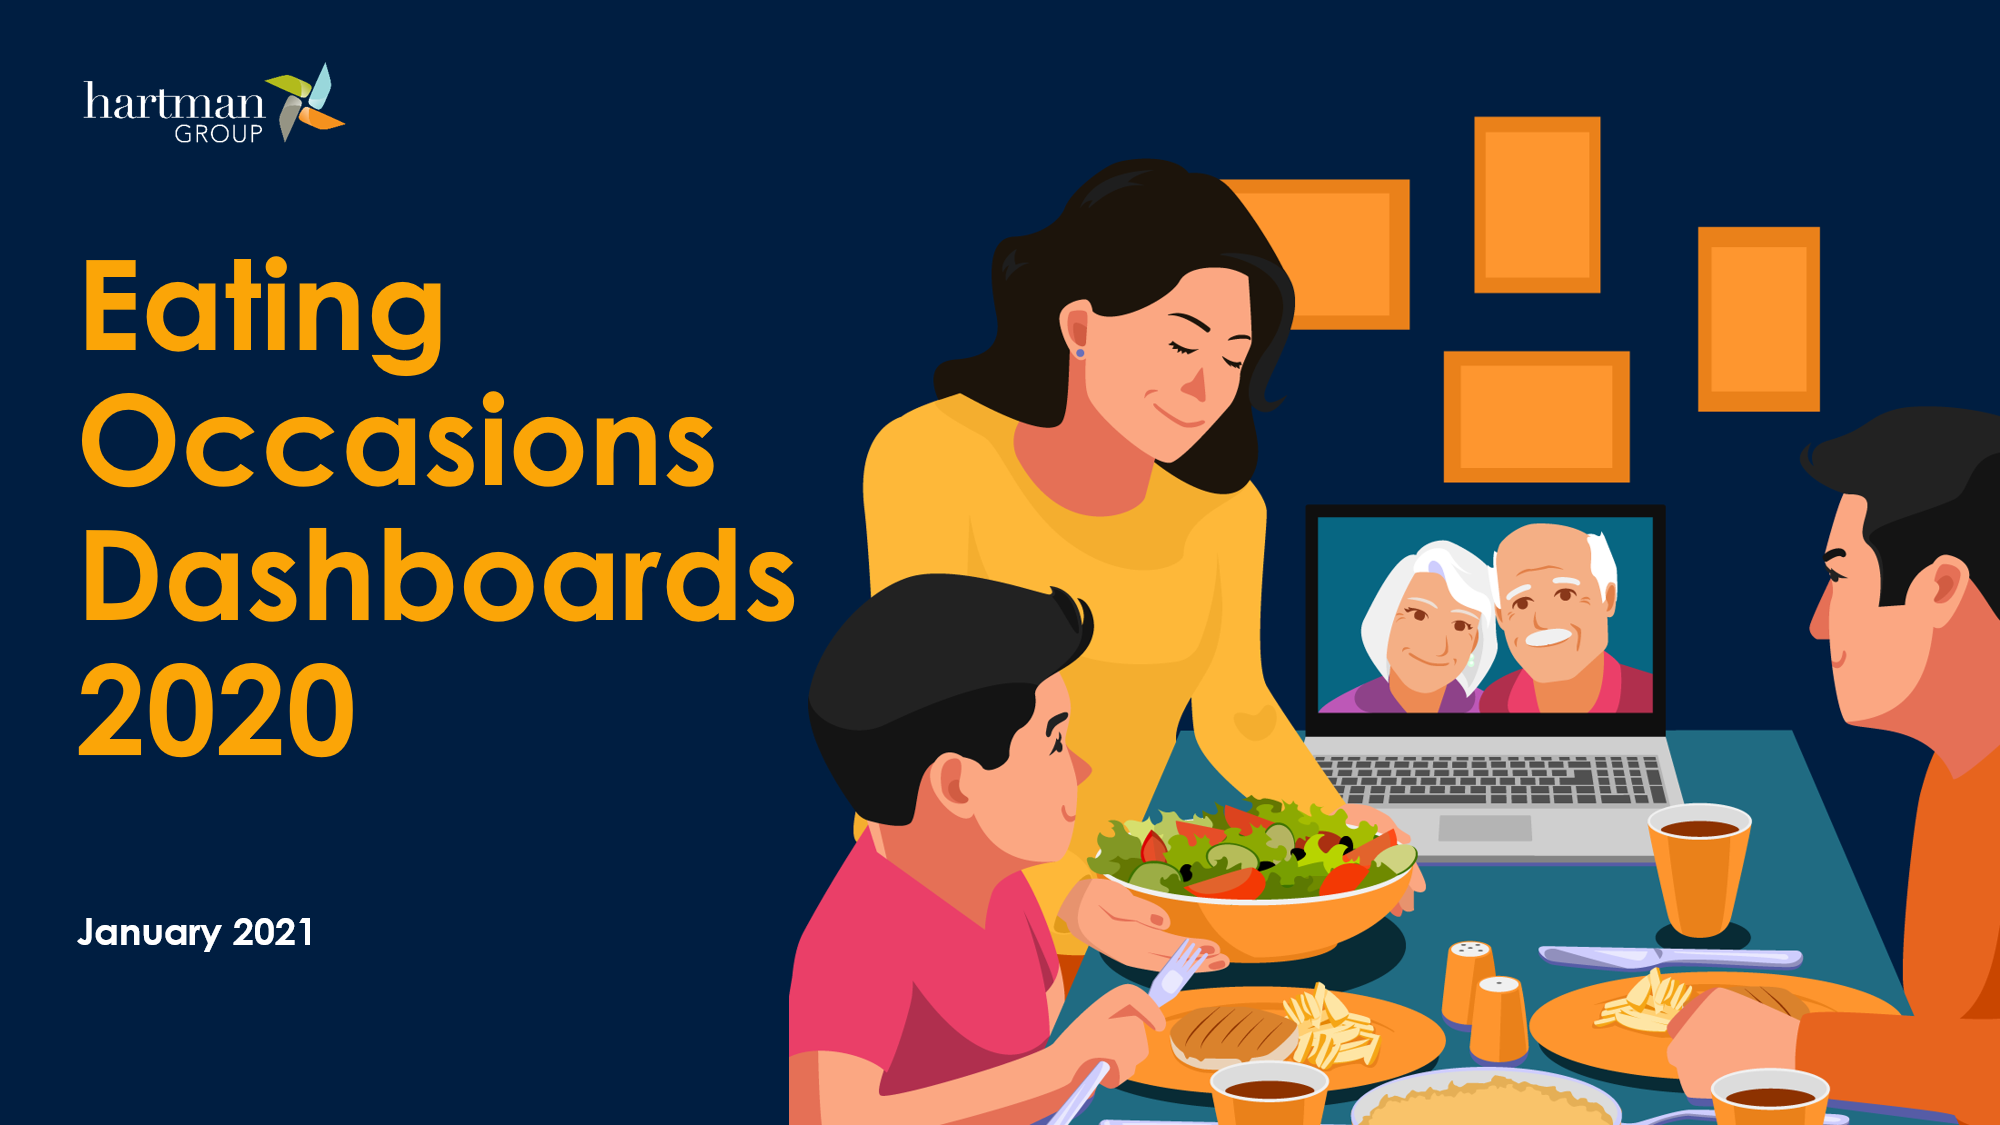 Eating Occasions Dashboards 2020 - TRACKING AMERICA'S FOOD & BEVERAGE CONSUMPTION BEHAVIORS